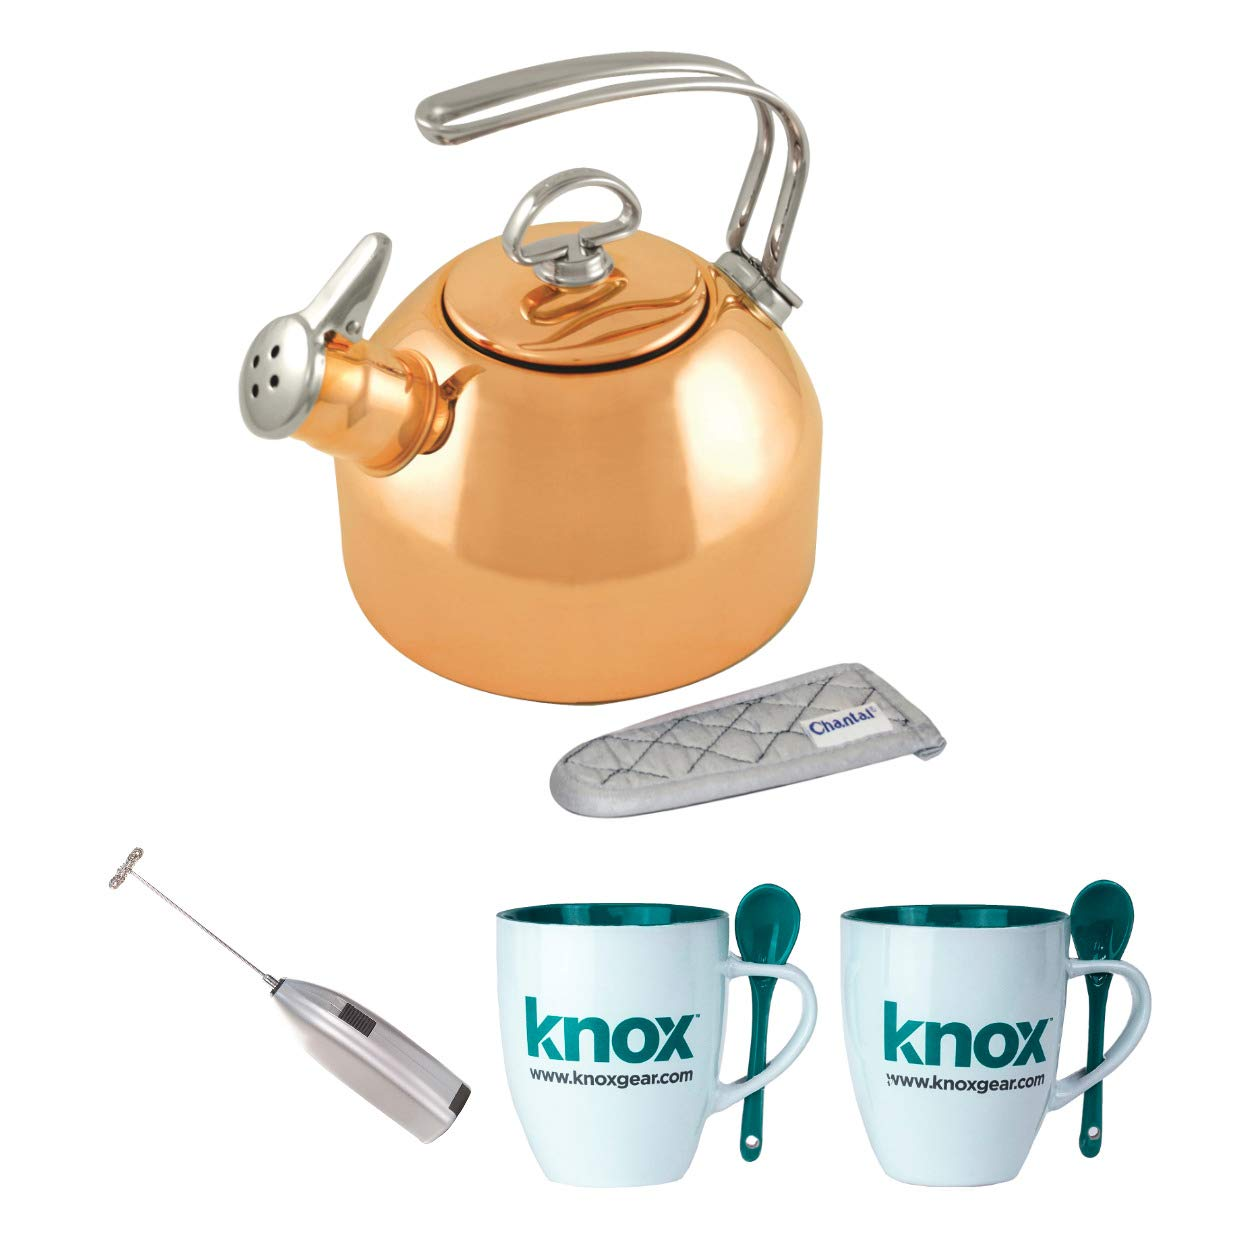 Chantal Copper Classic Teakettle-1.8 Quart Includes Milk Frother and 2 Mugs Bundle